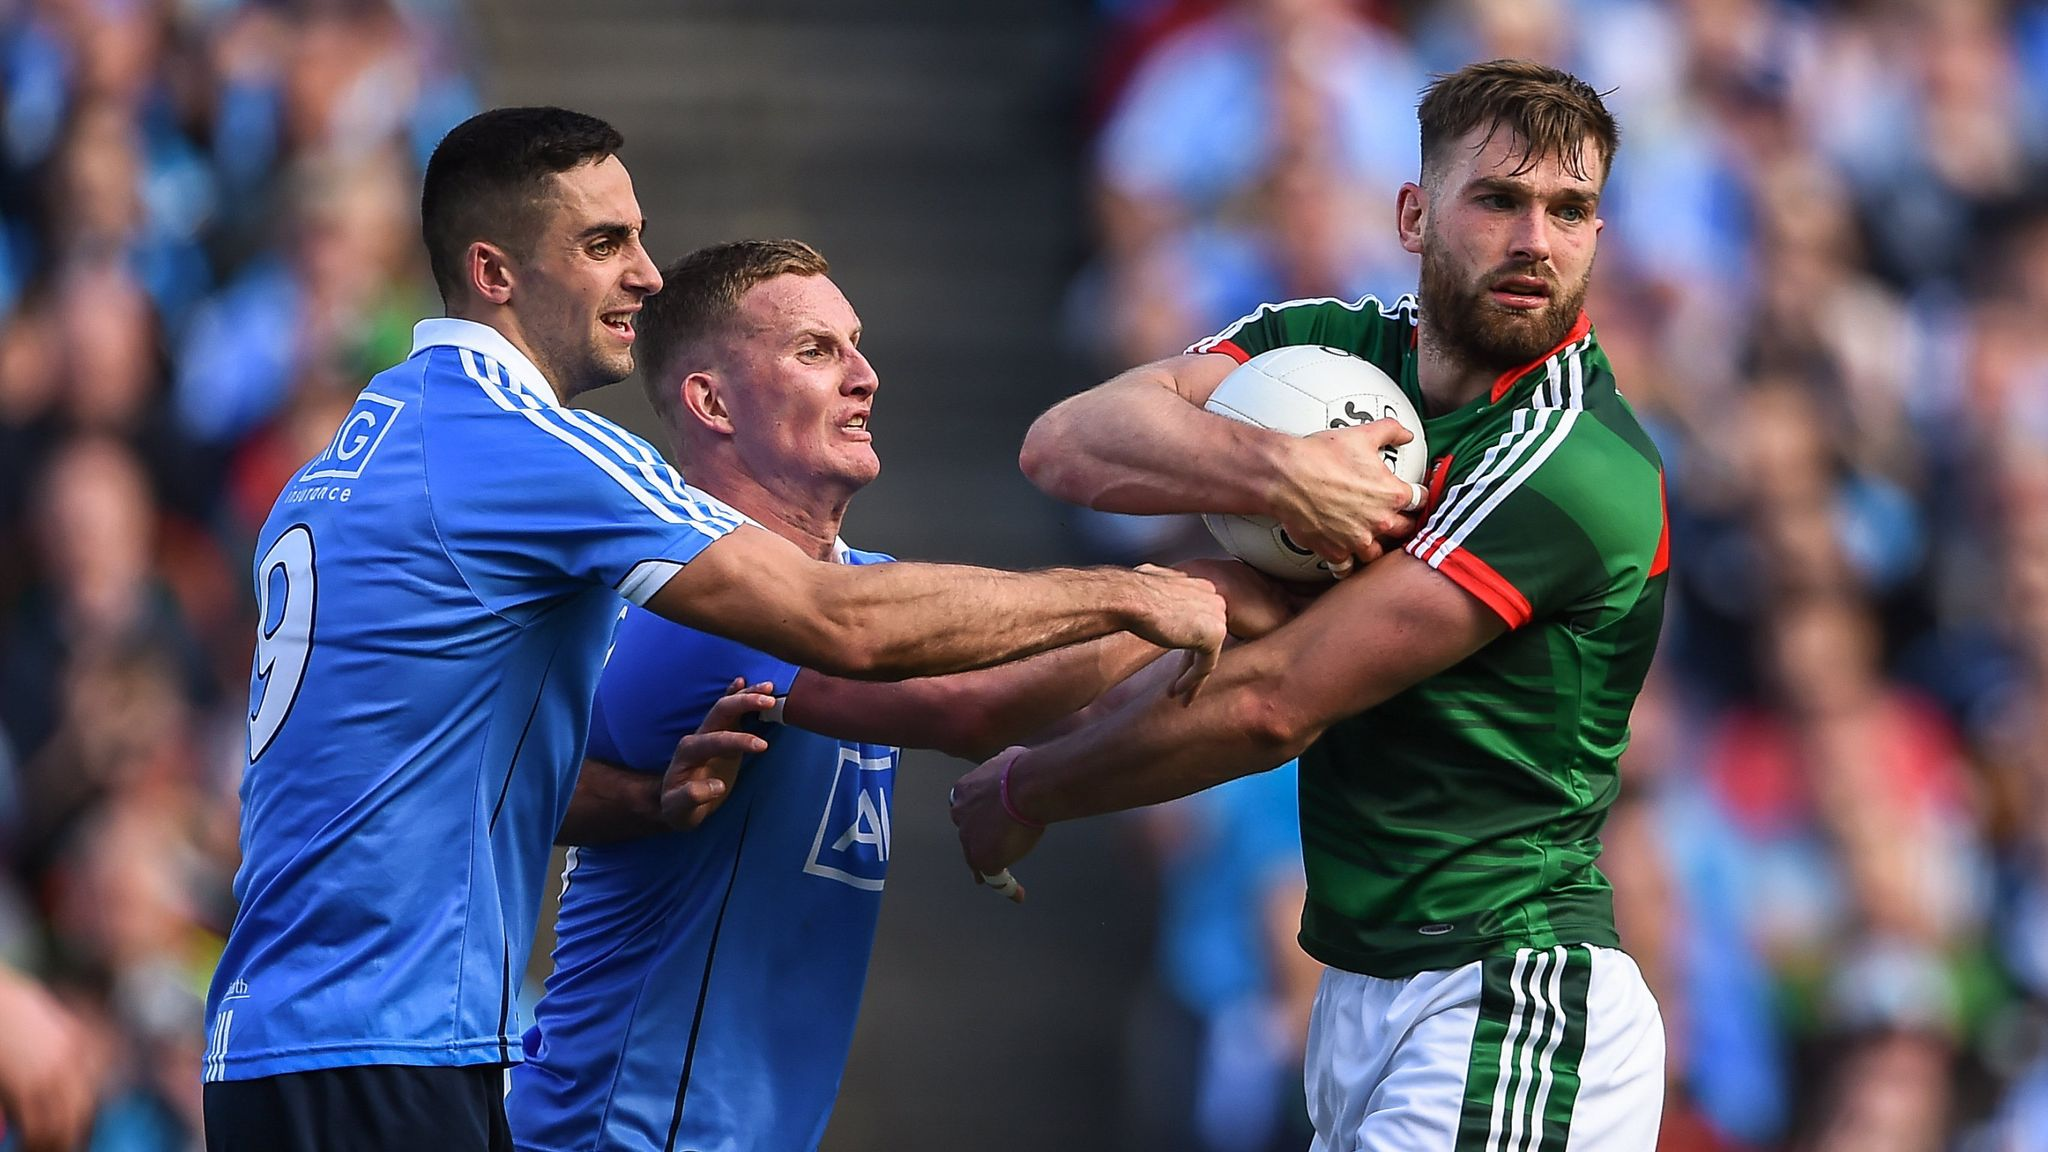 Mayo draw Down in second round of football qualifiers